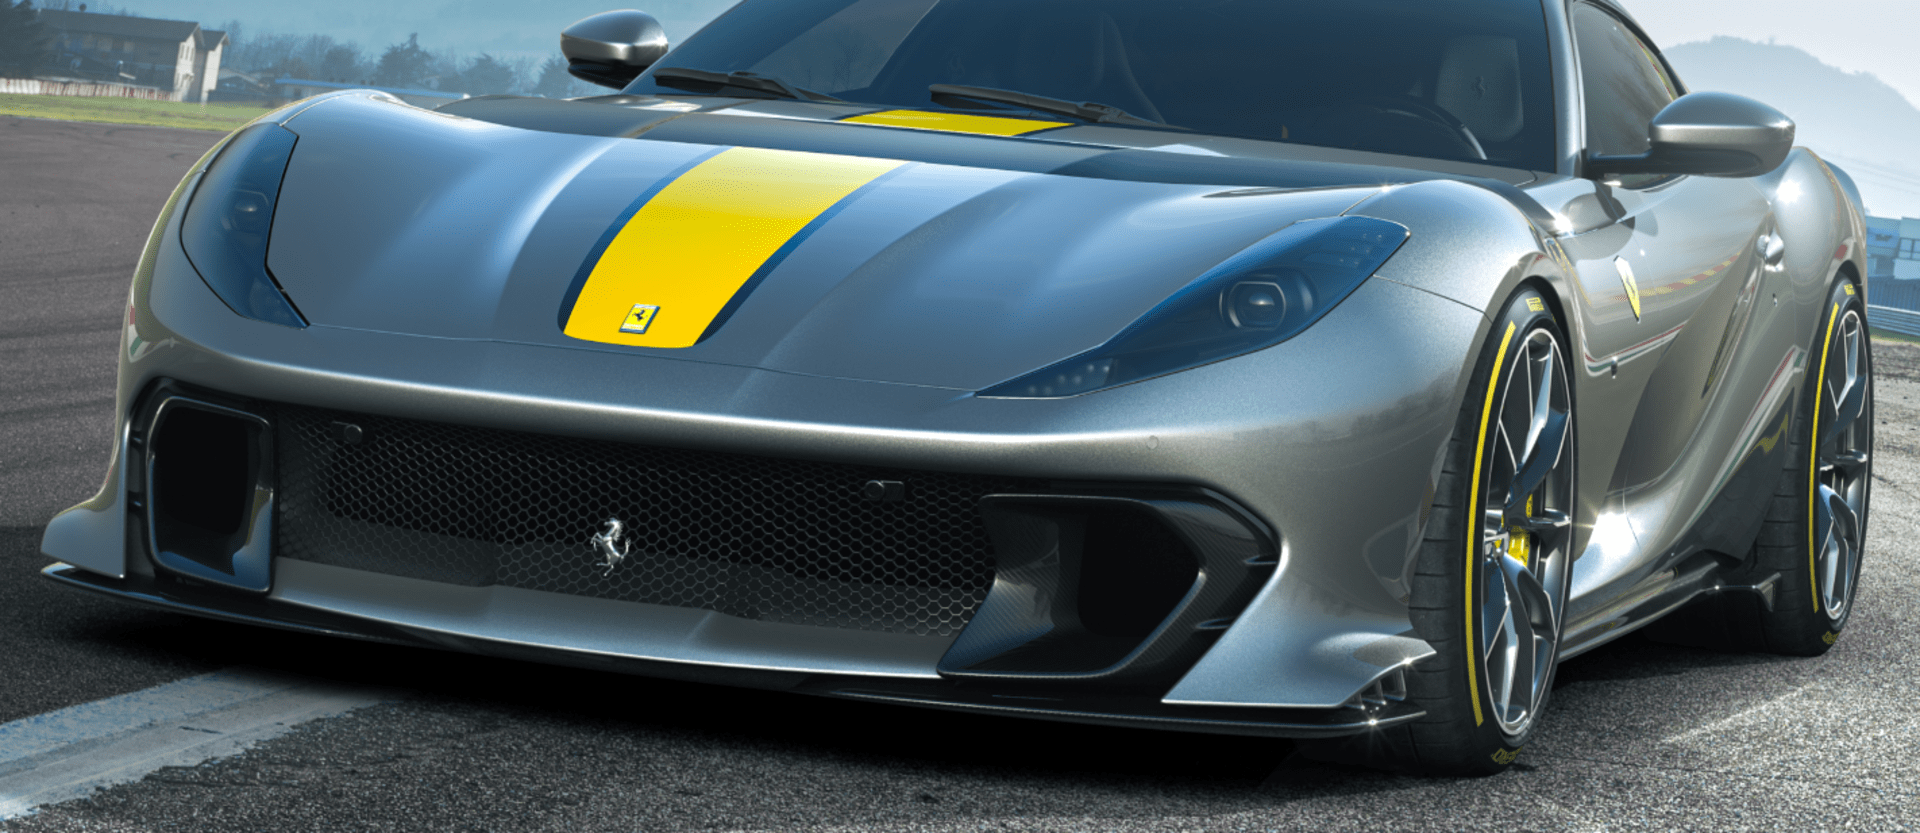 2021 Ferrari 812 Superfast Special Series 3 Png